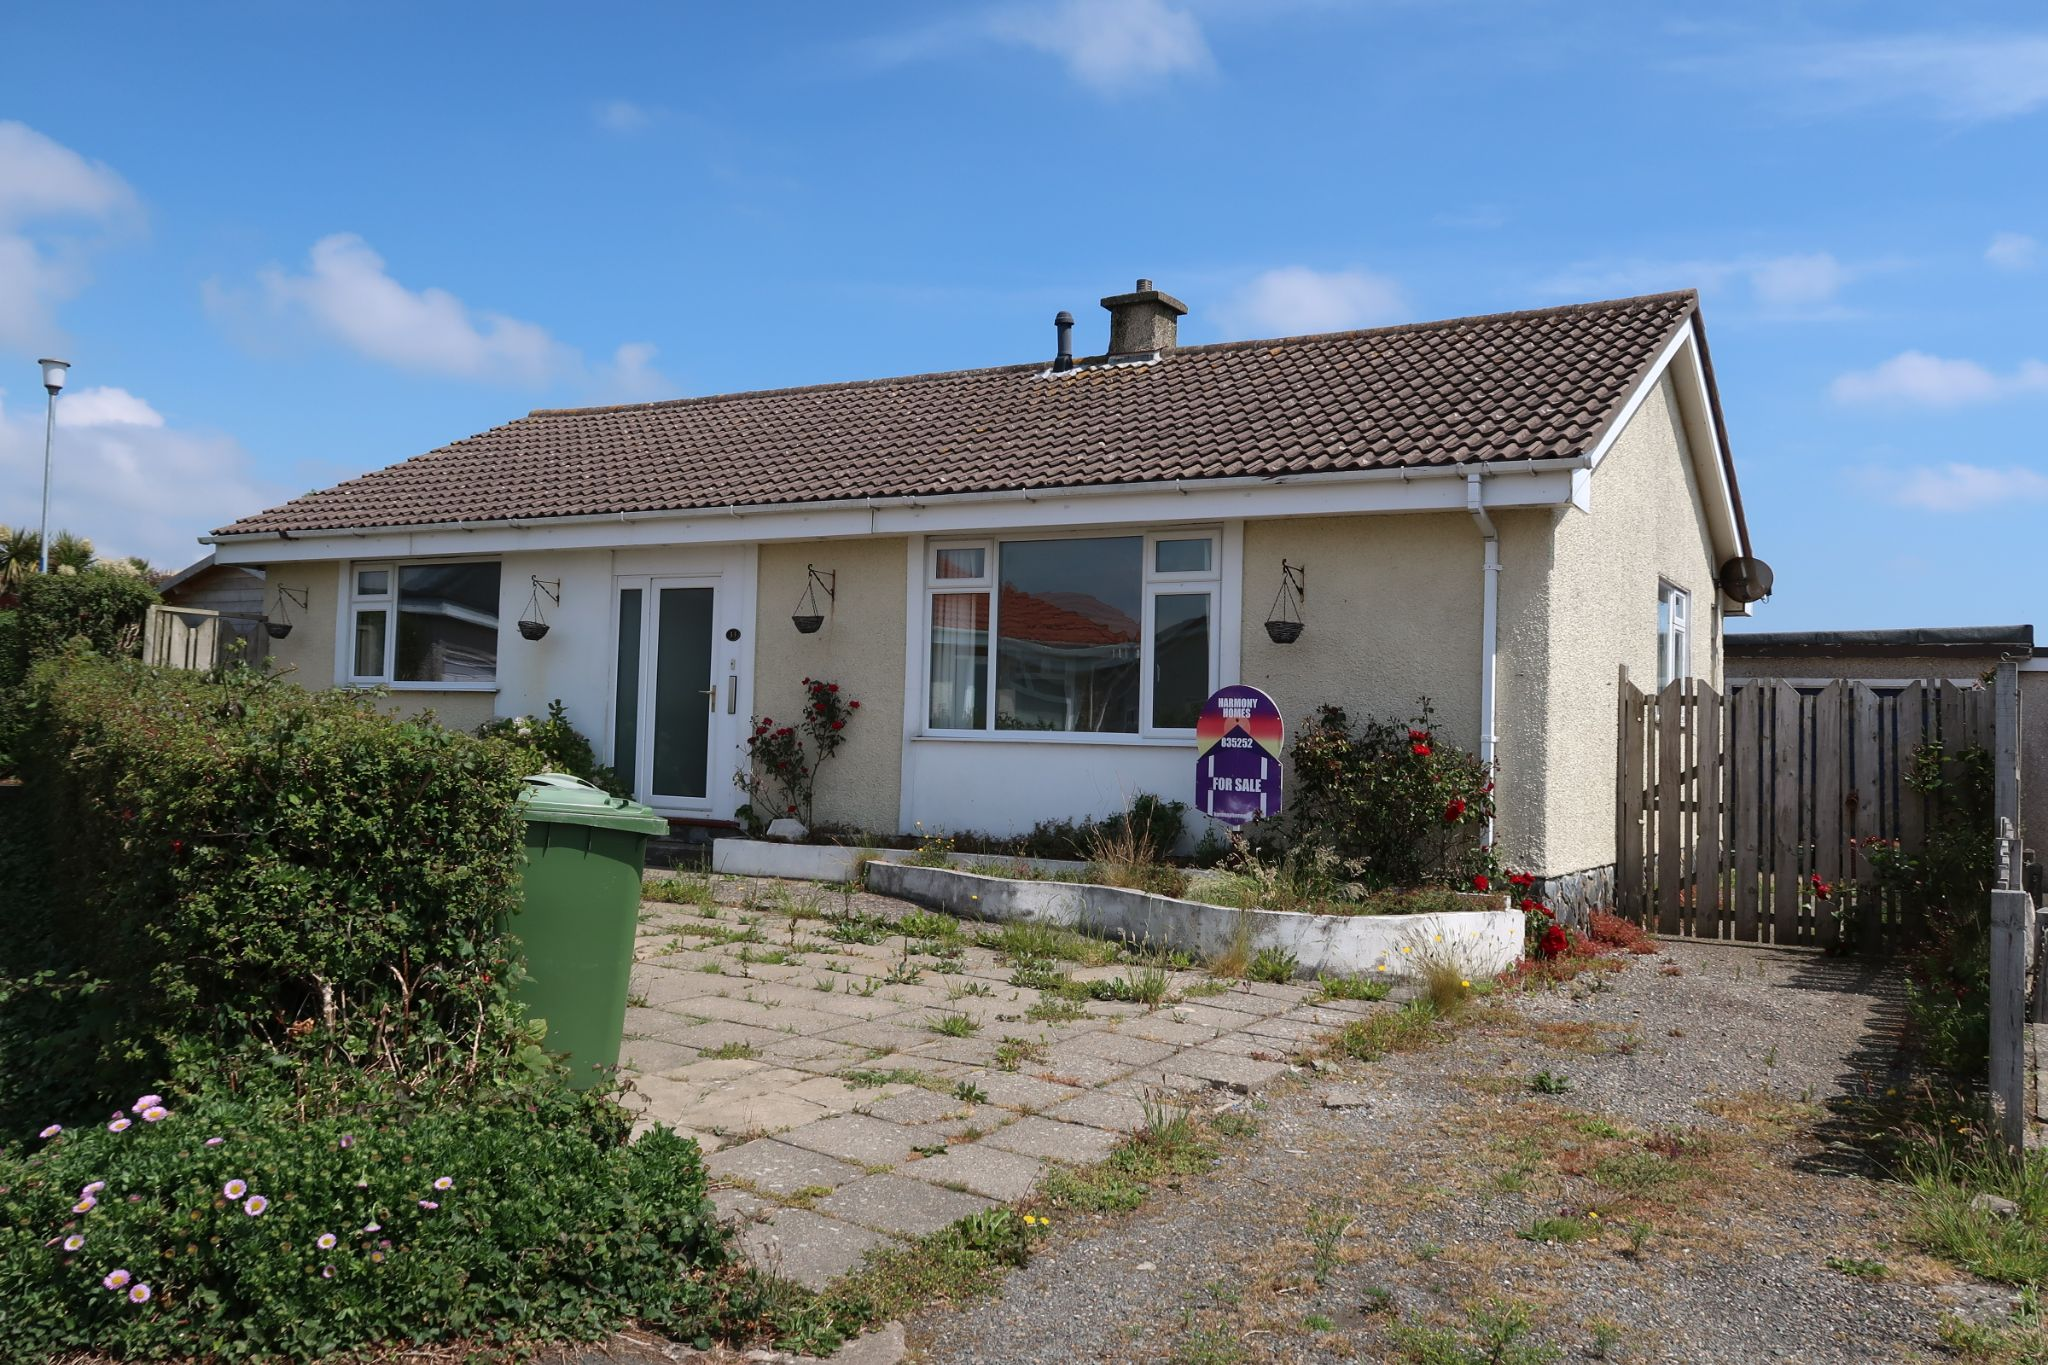 2 bedroom detached bungalow SSTC in Ballabeg - Photograph 1